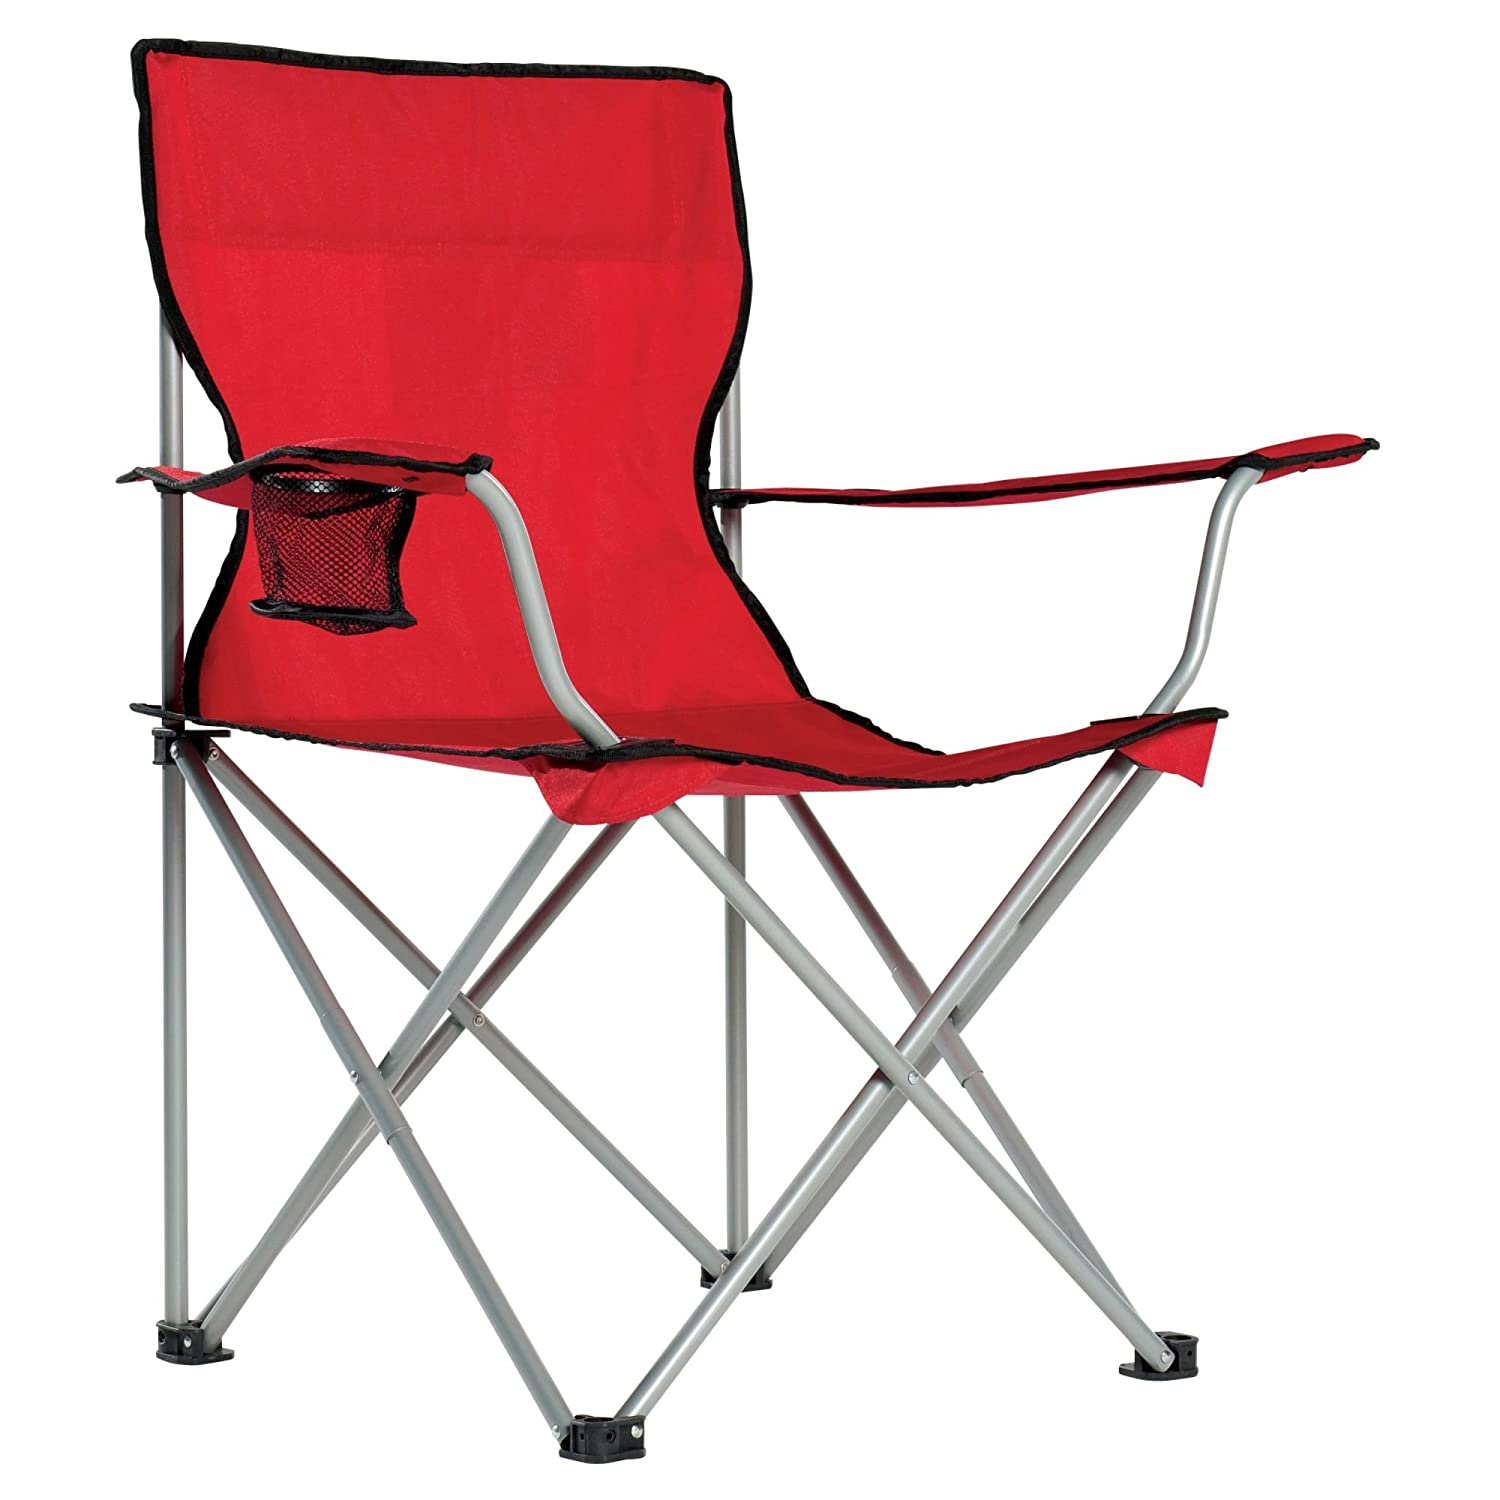 Folding Camping Chair with Cup Holder from Bell Pass Ventures B075WDCWS4